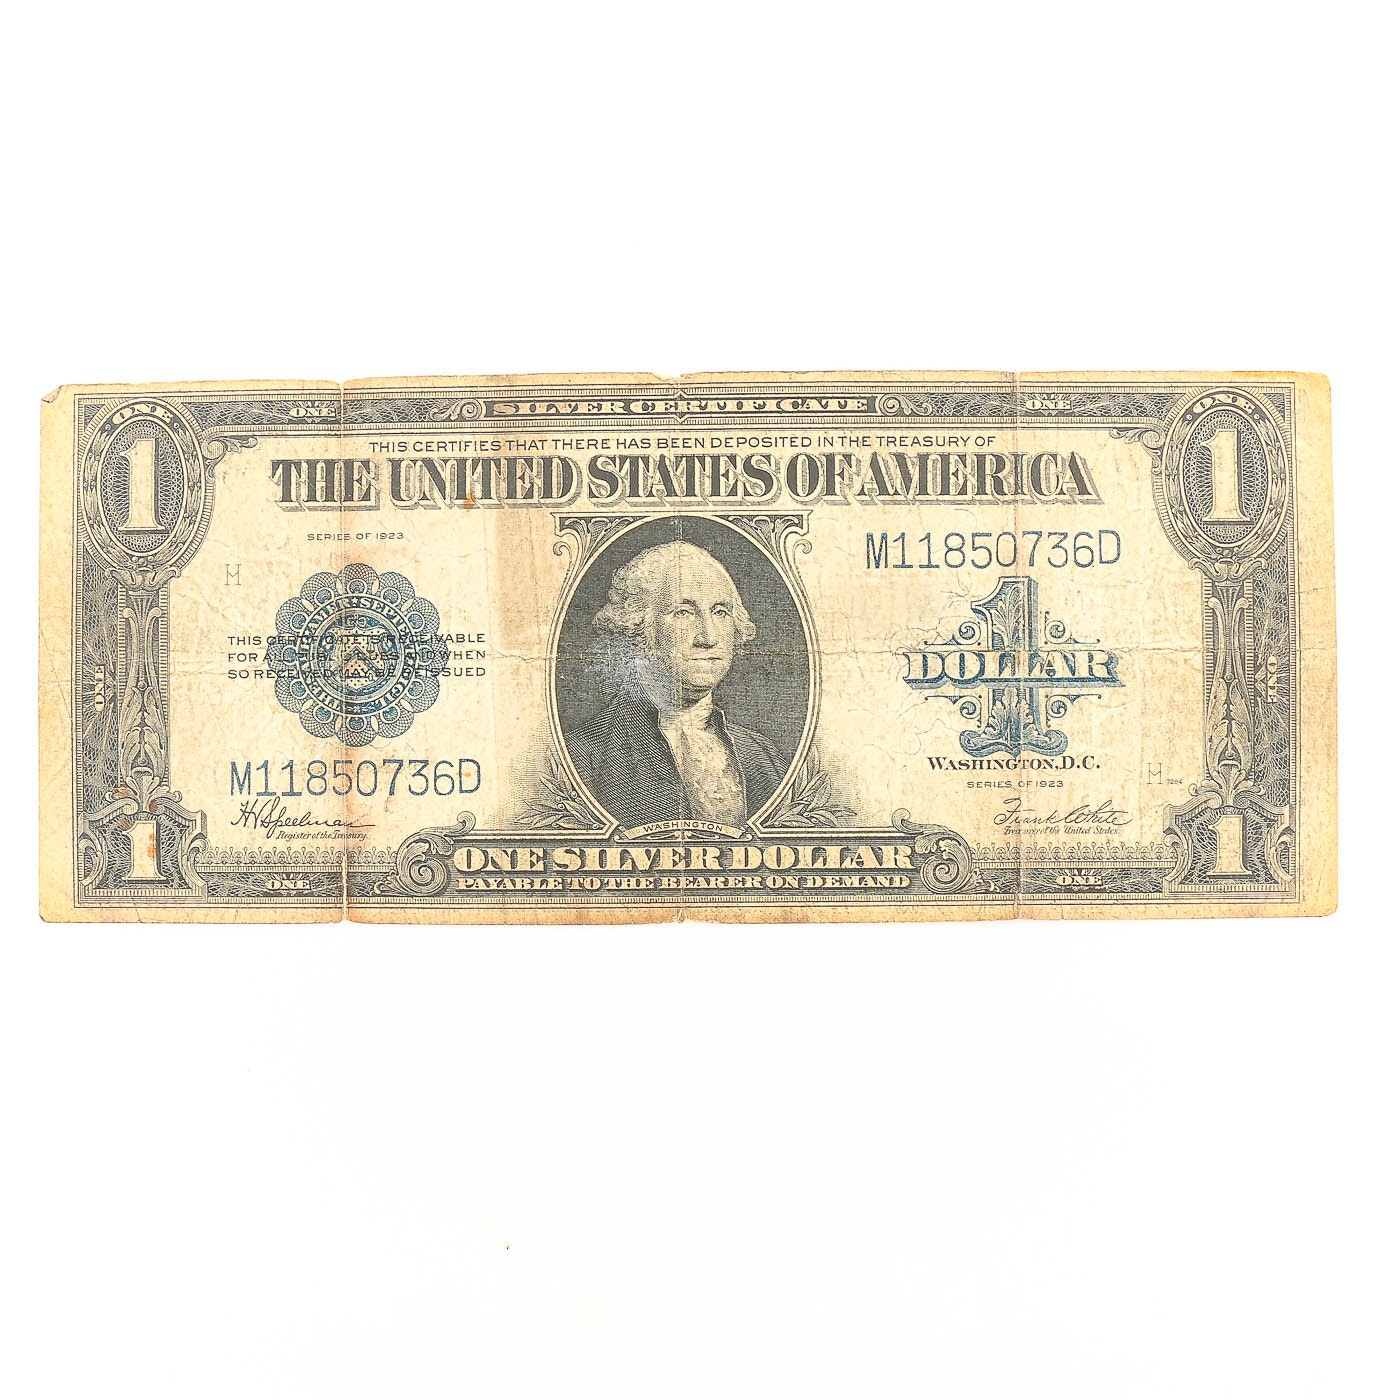 Series of 1923 $1 United States Silver Certificate